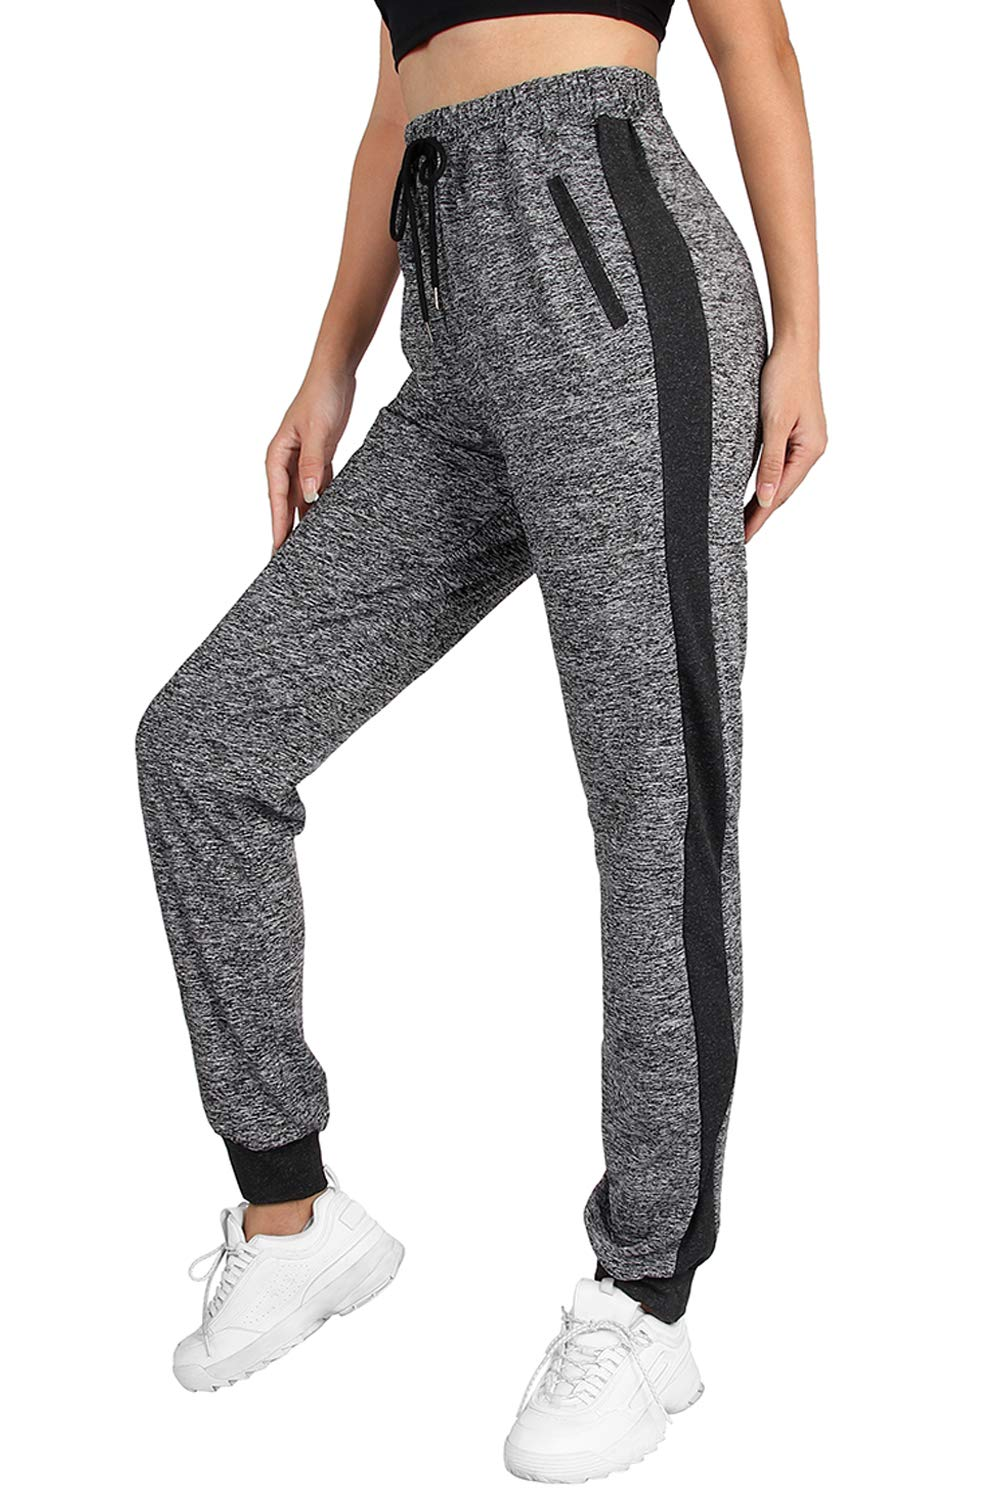 onlypuff Women's Athletic Running Sweatpants Workout Joggers Pants Drawstring High Waist with Pockets